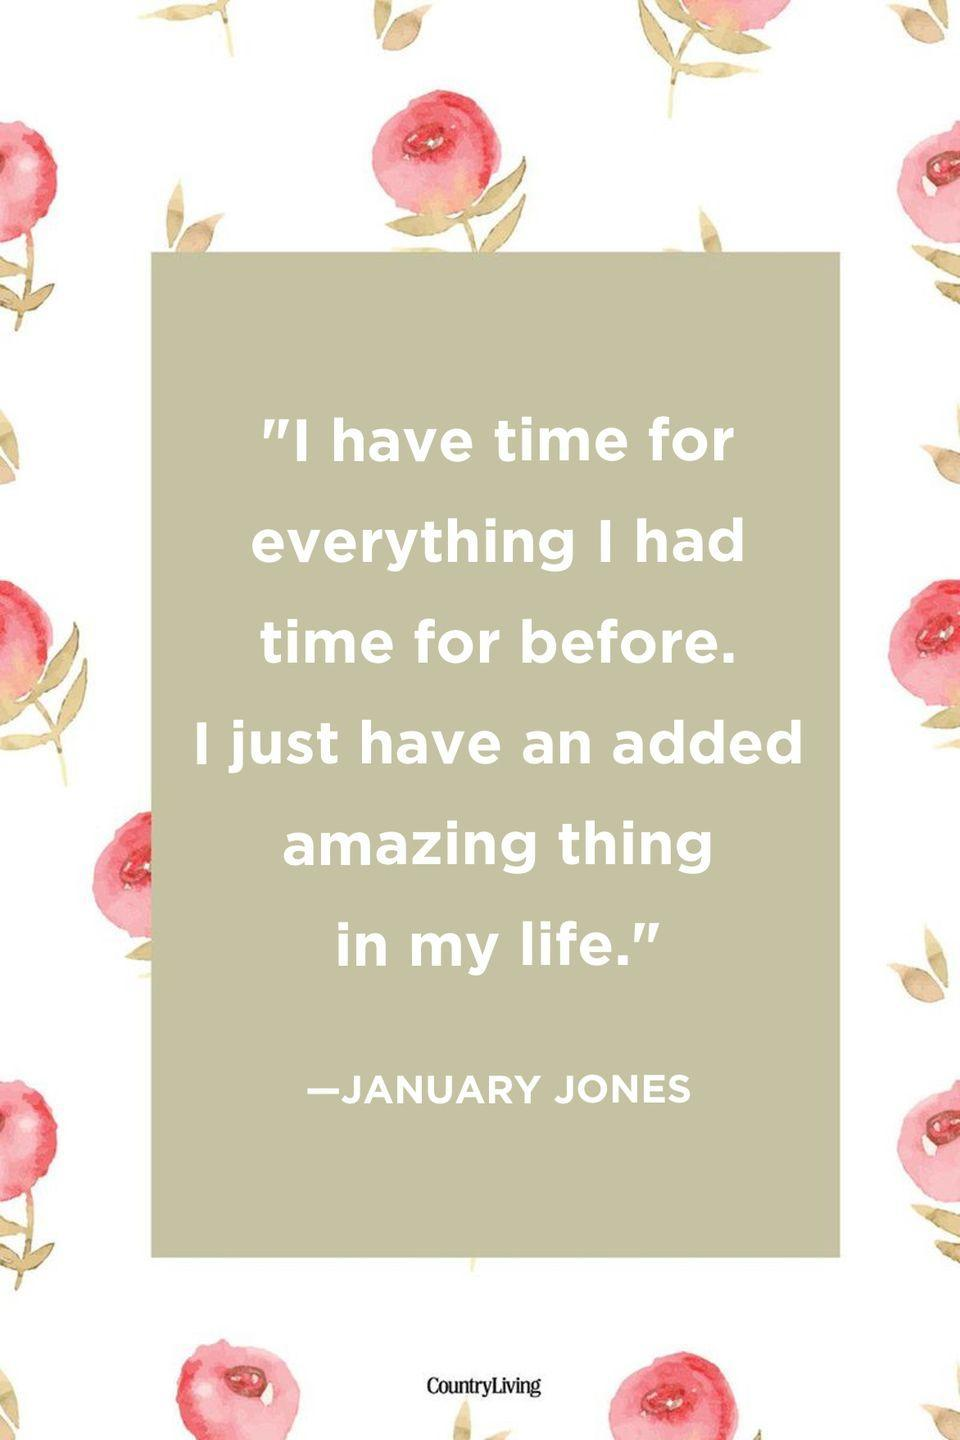 "<p>""I have time for everything I had time for before. I just have an added amazing thing in my life.""</p>"